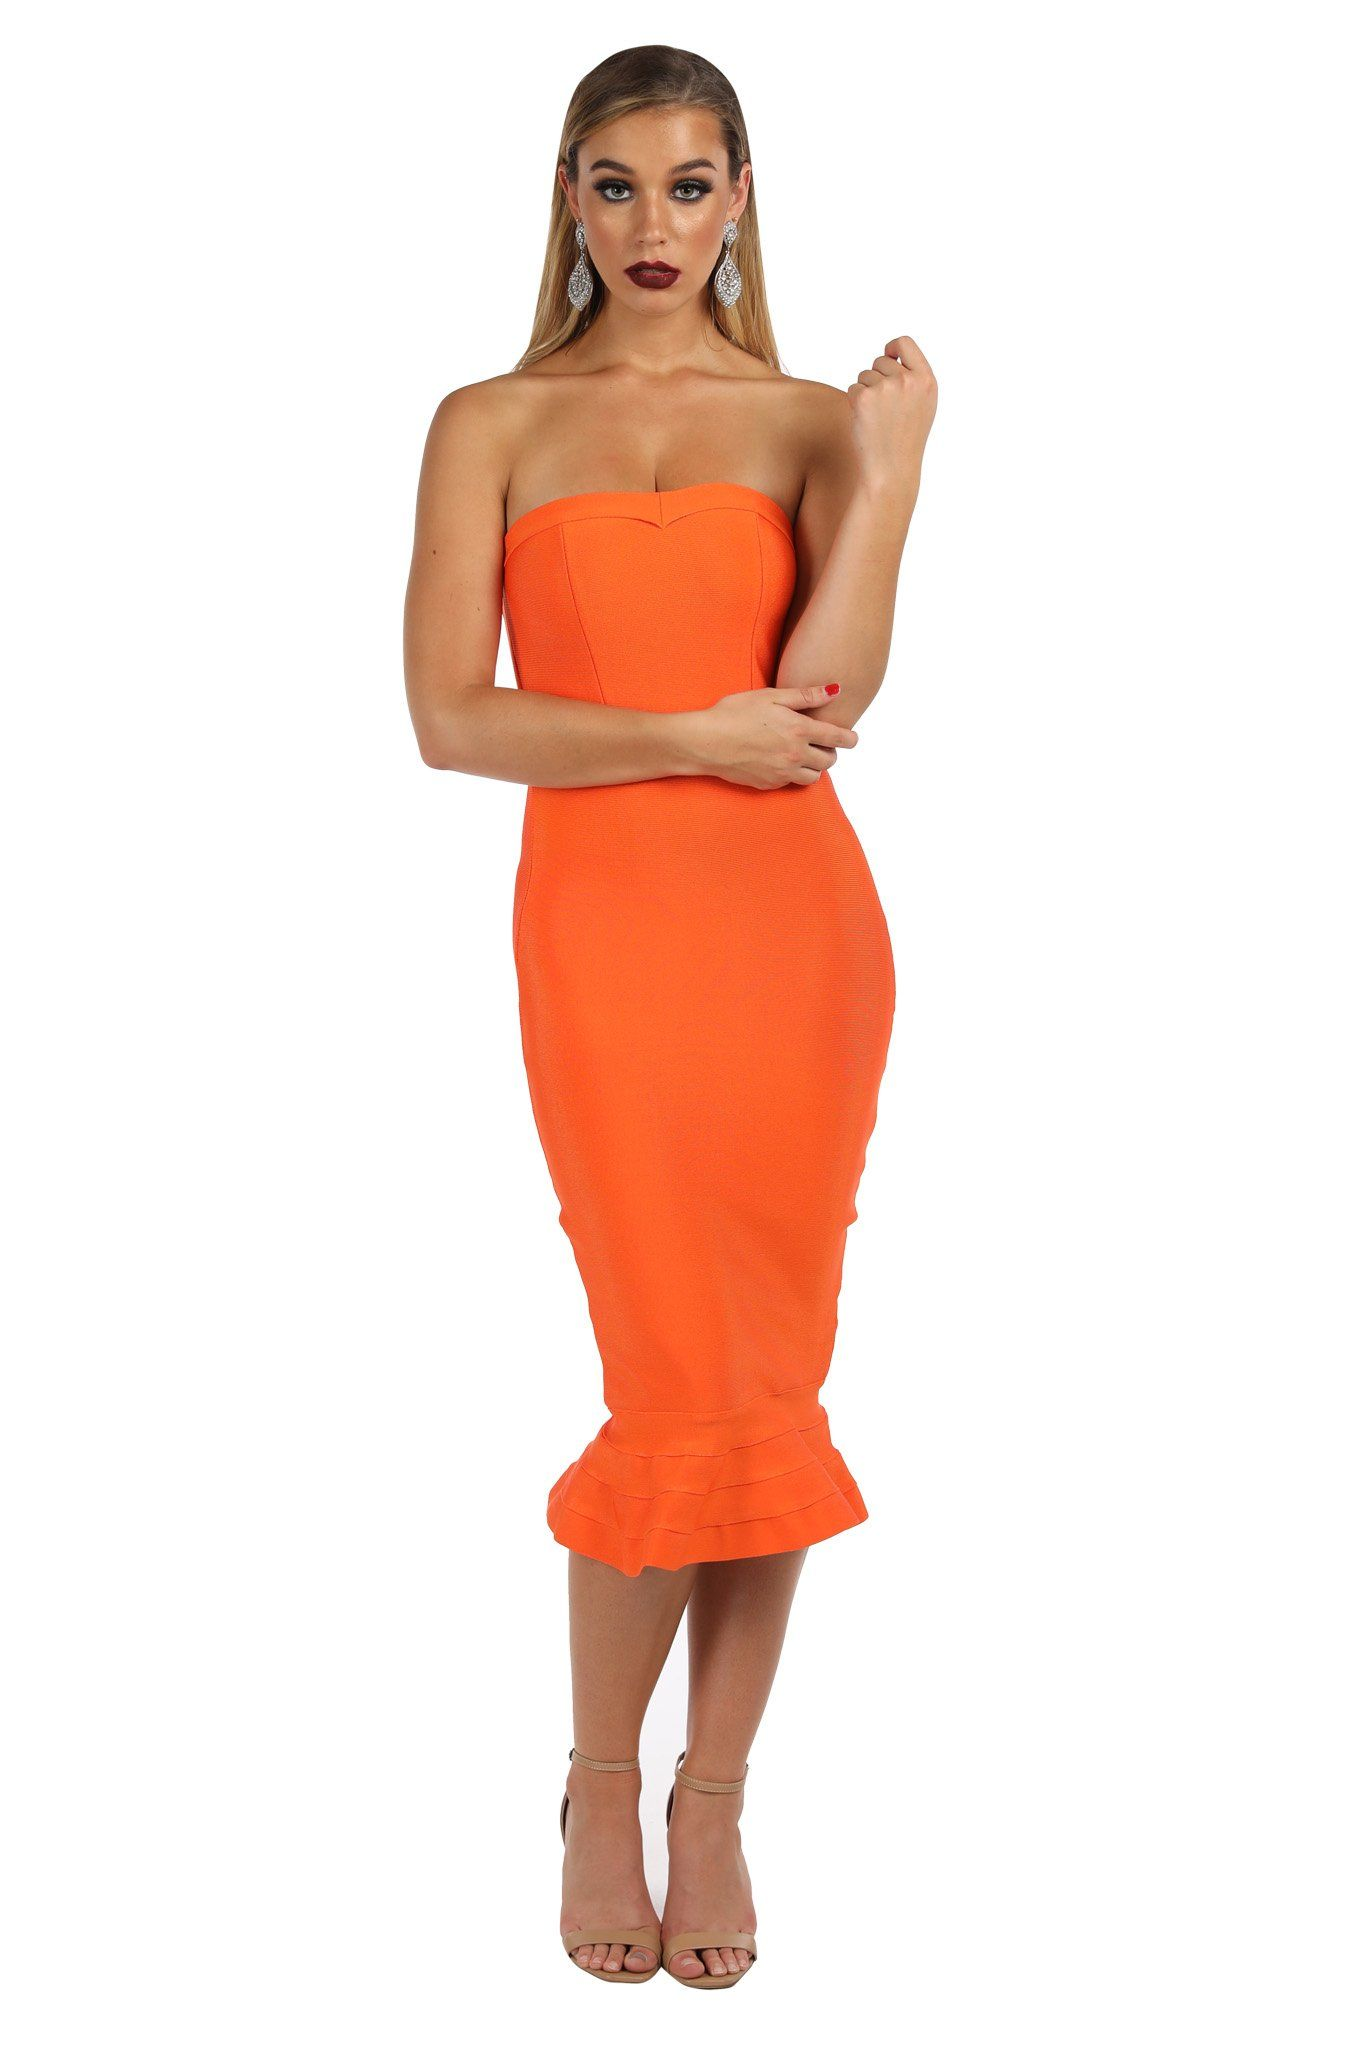 Bright Orange colored strapless bandage dress with fluted hem design in midi below knee length